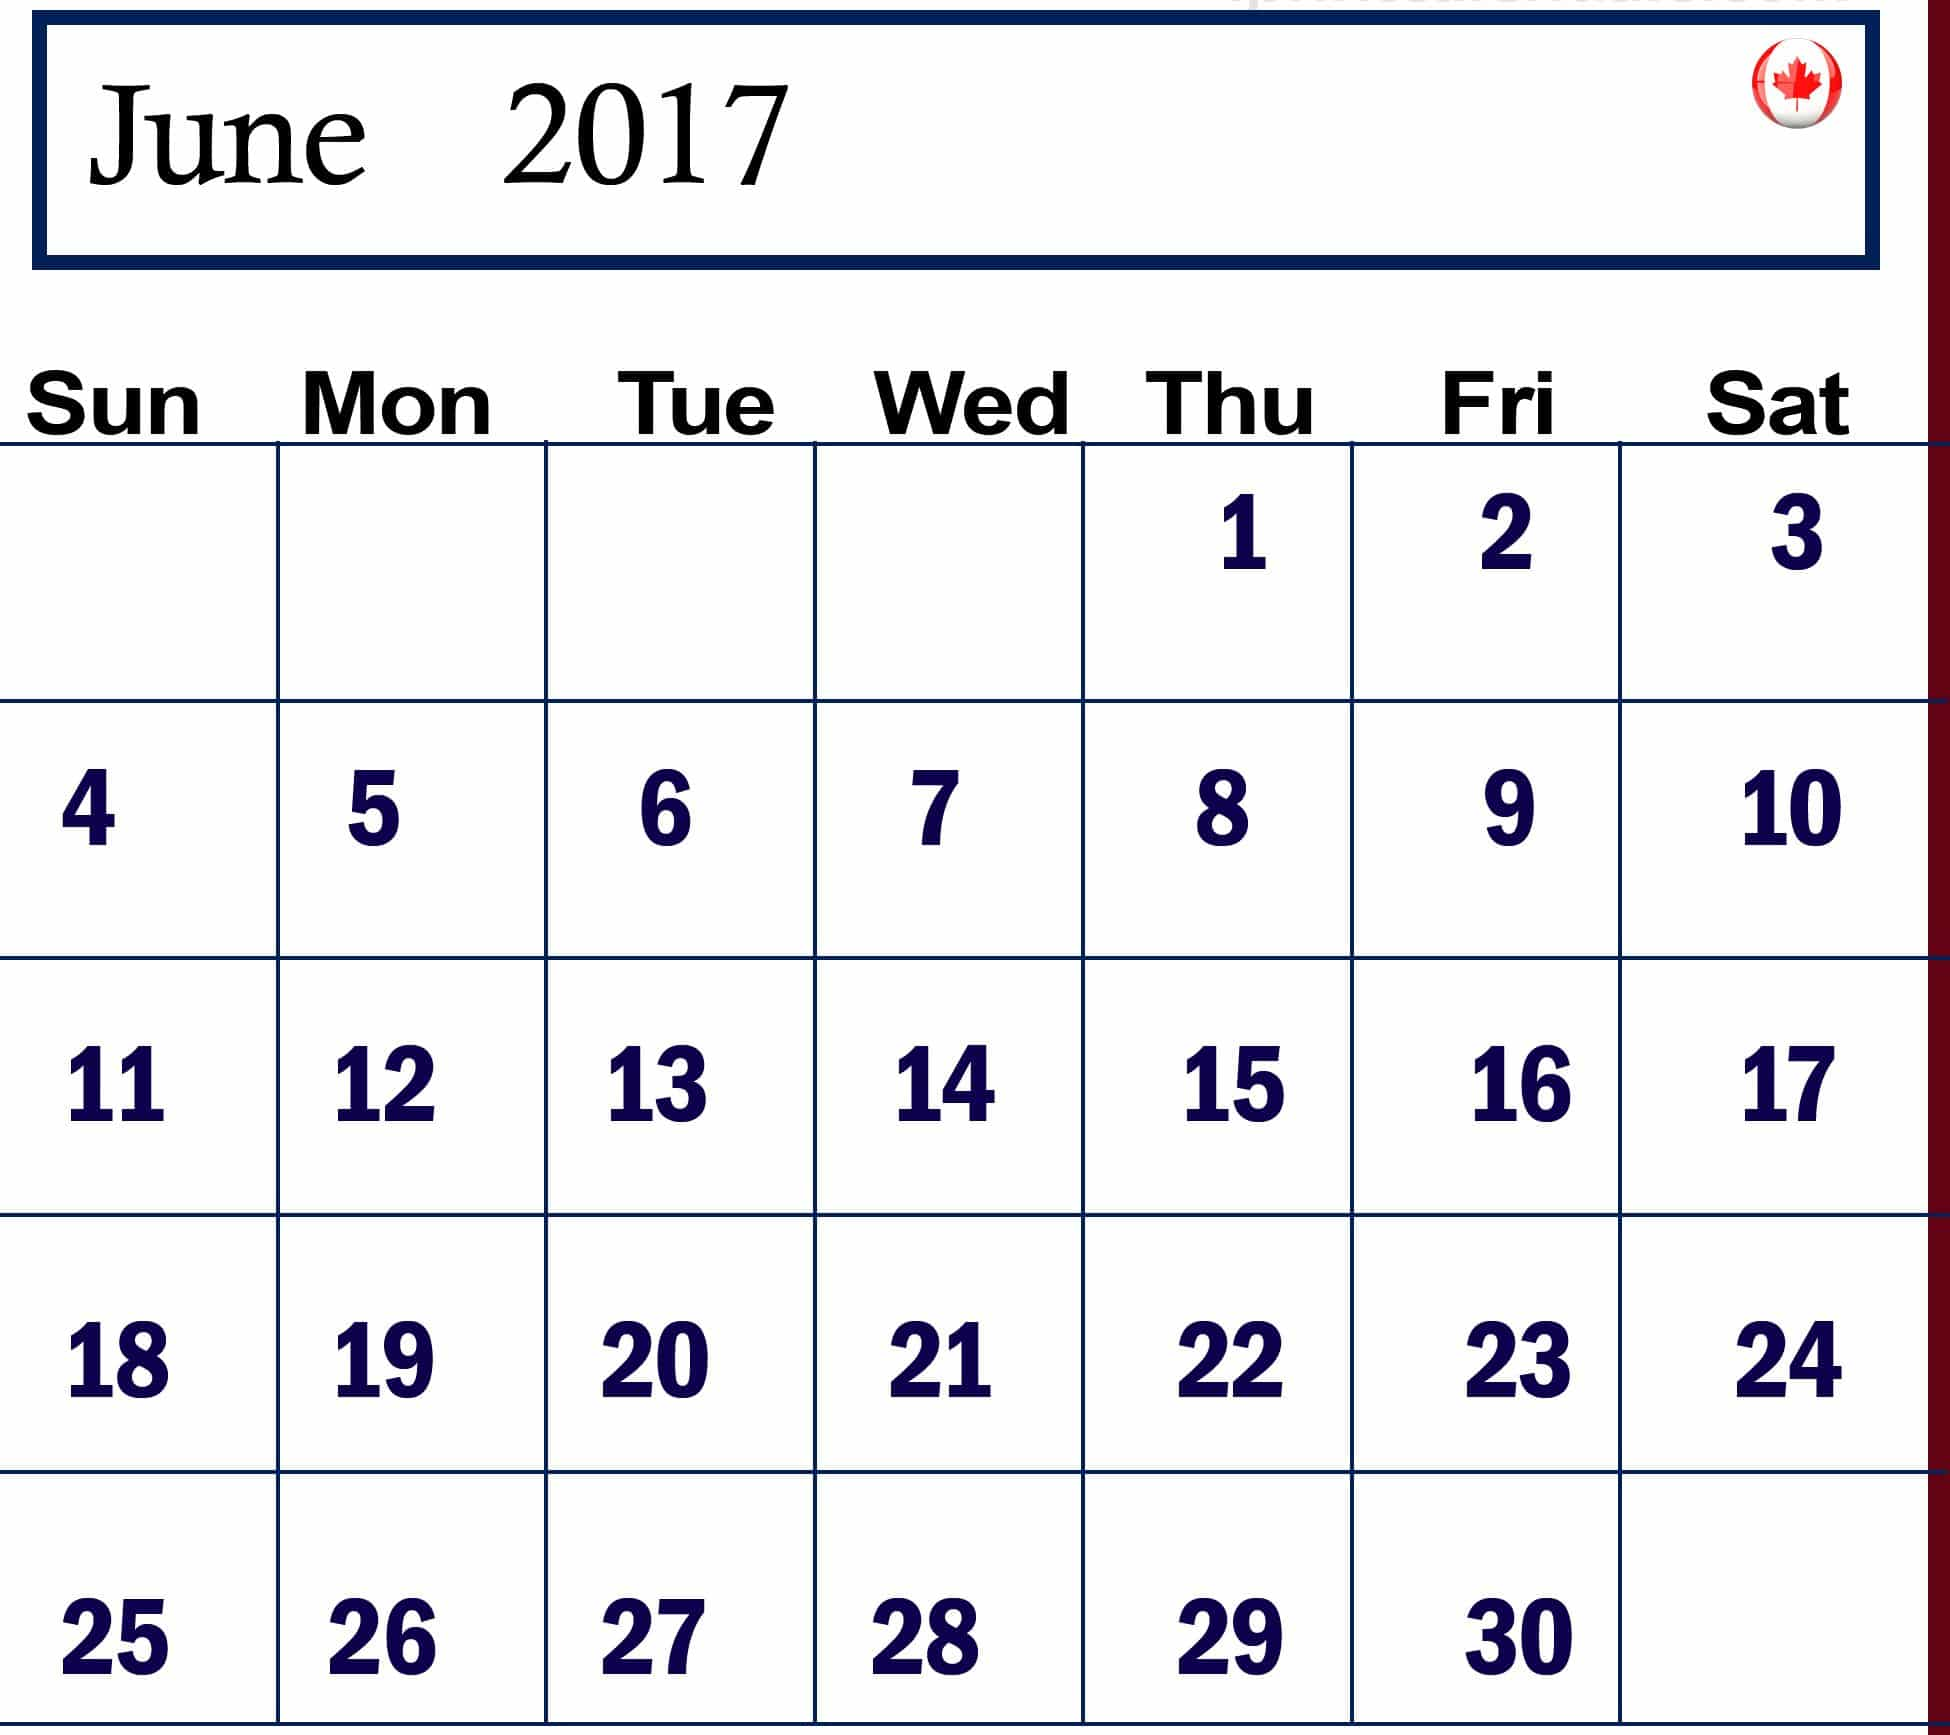 Download June 2017 calendar Canada